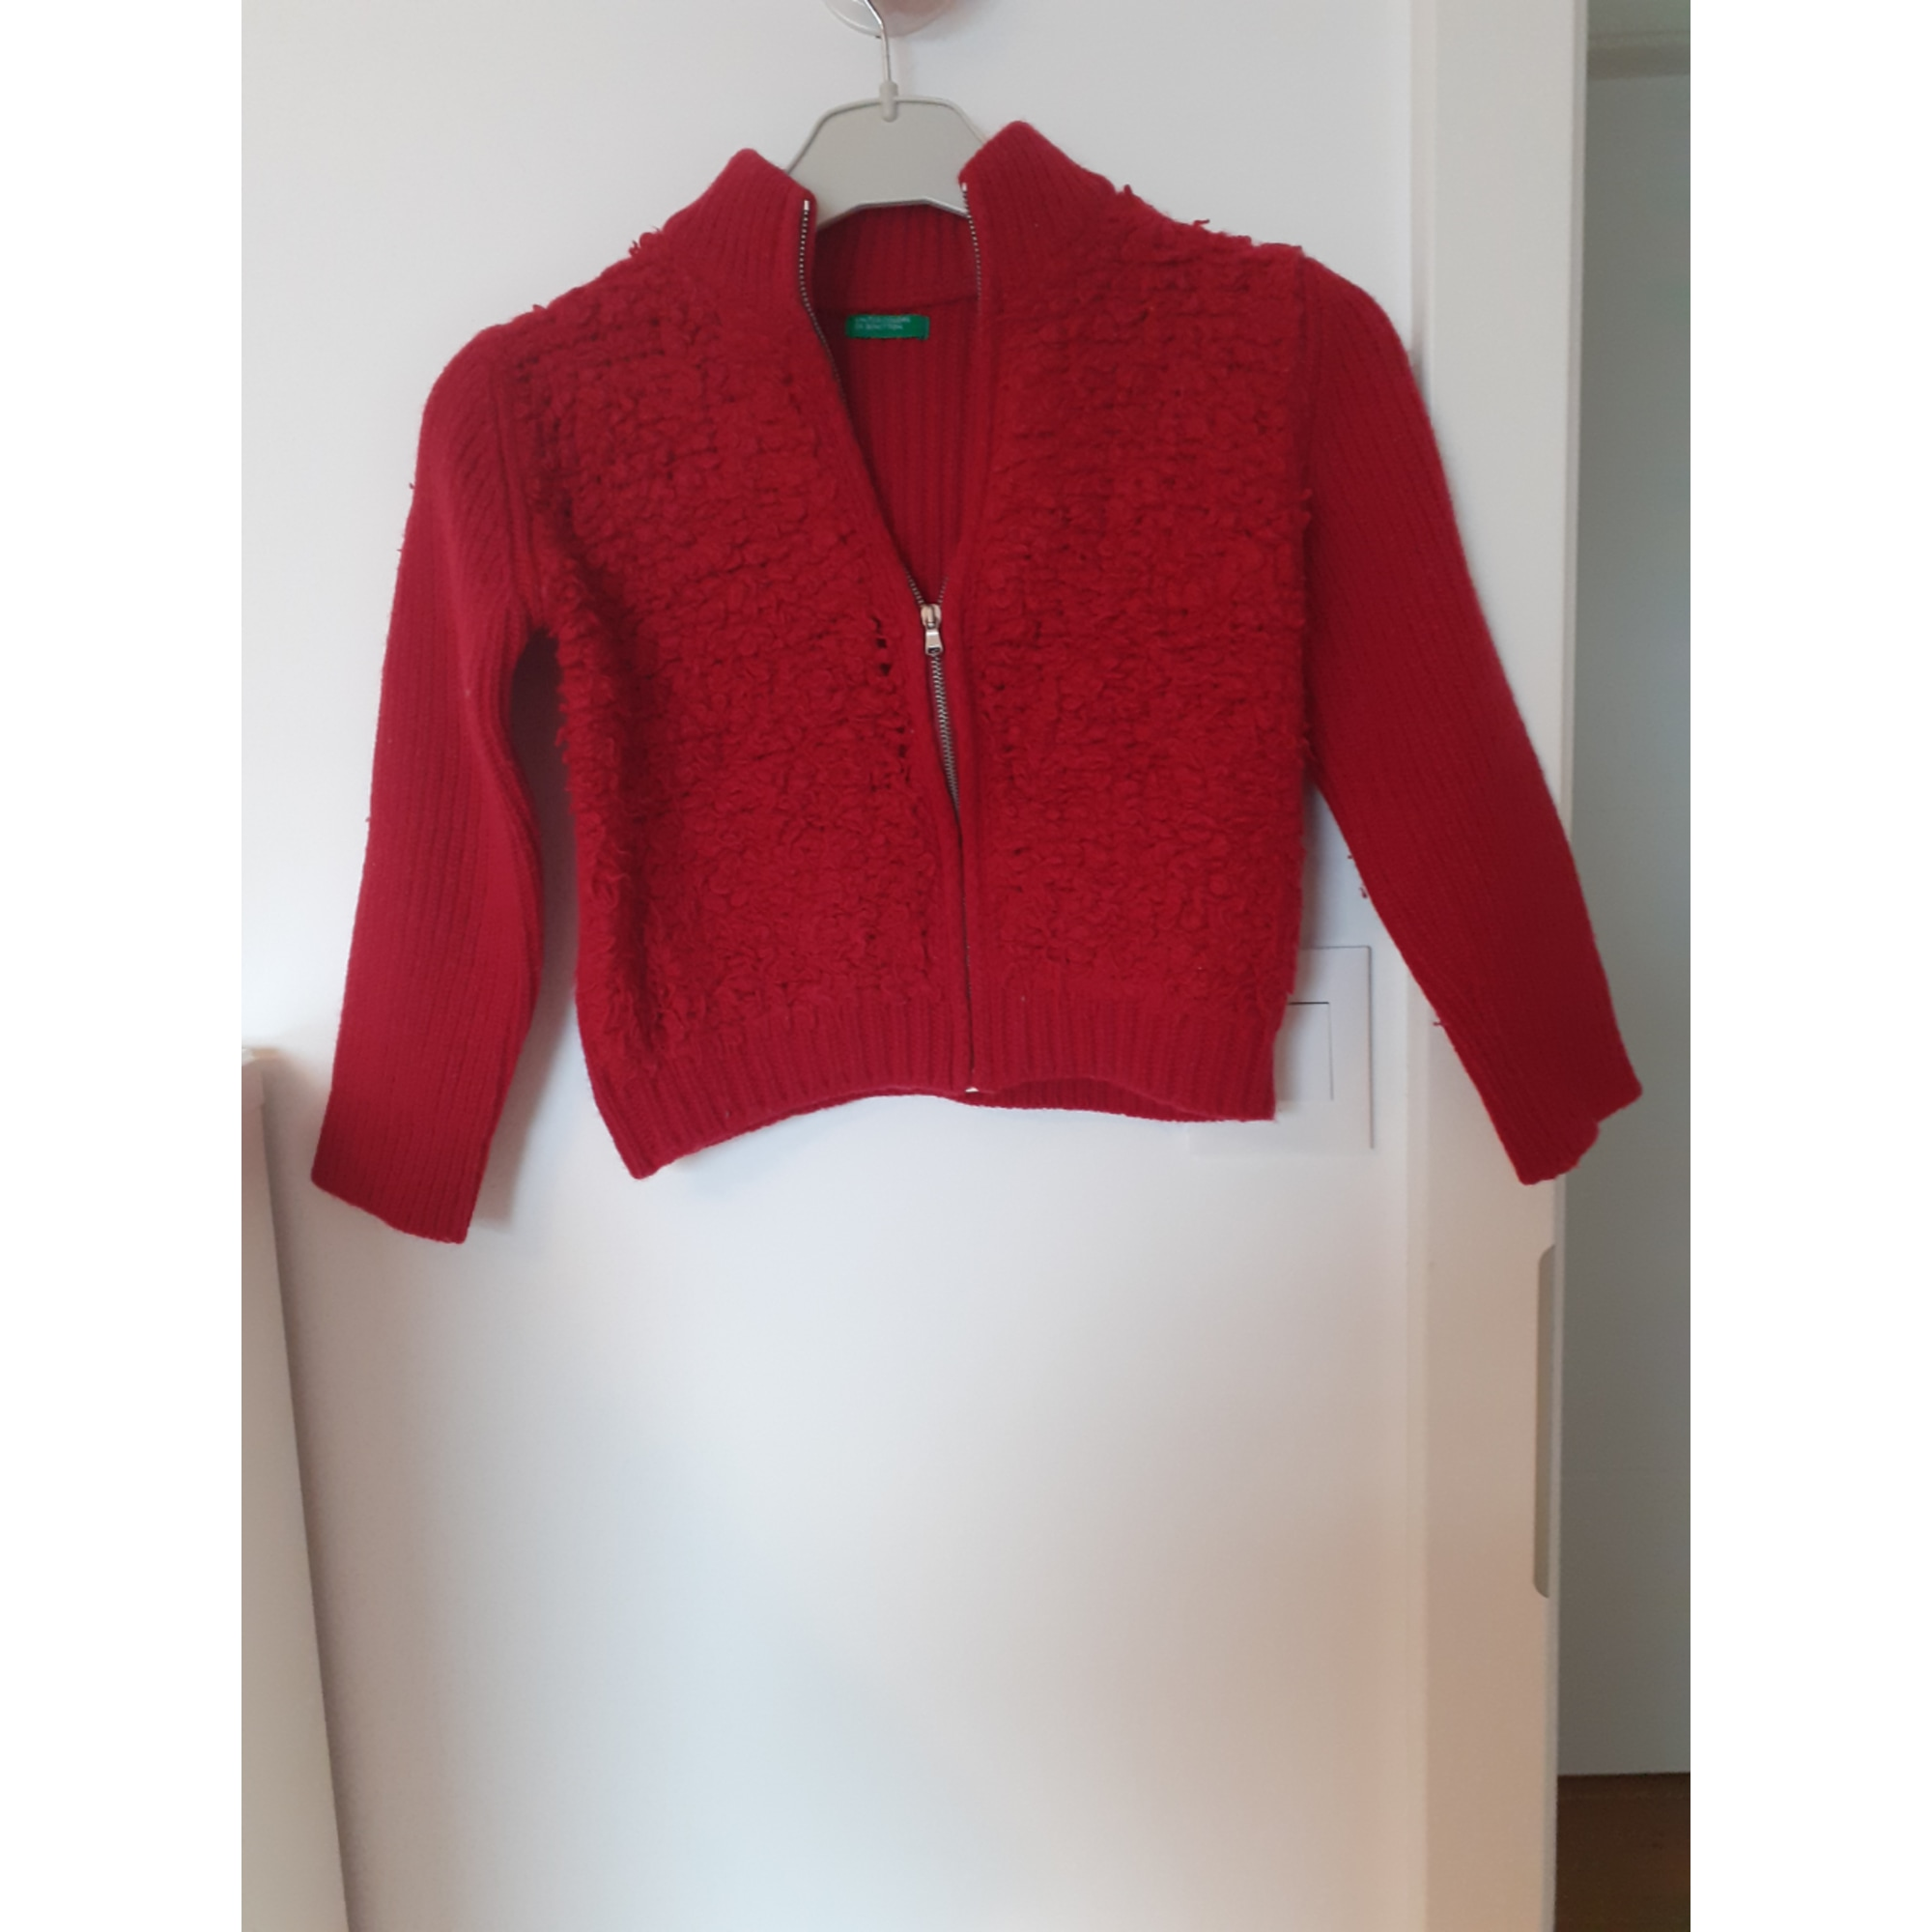 Gilet, cardigan UNITED COLORS OF BENETTON Rouge, bordeaux